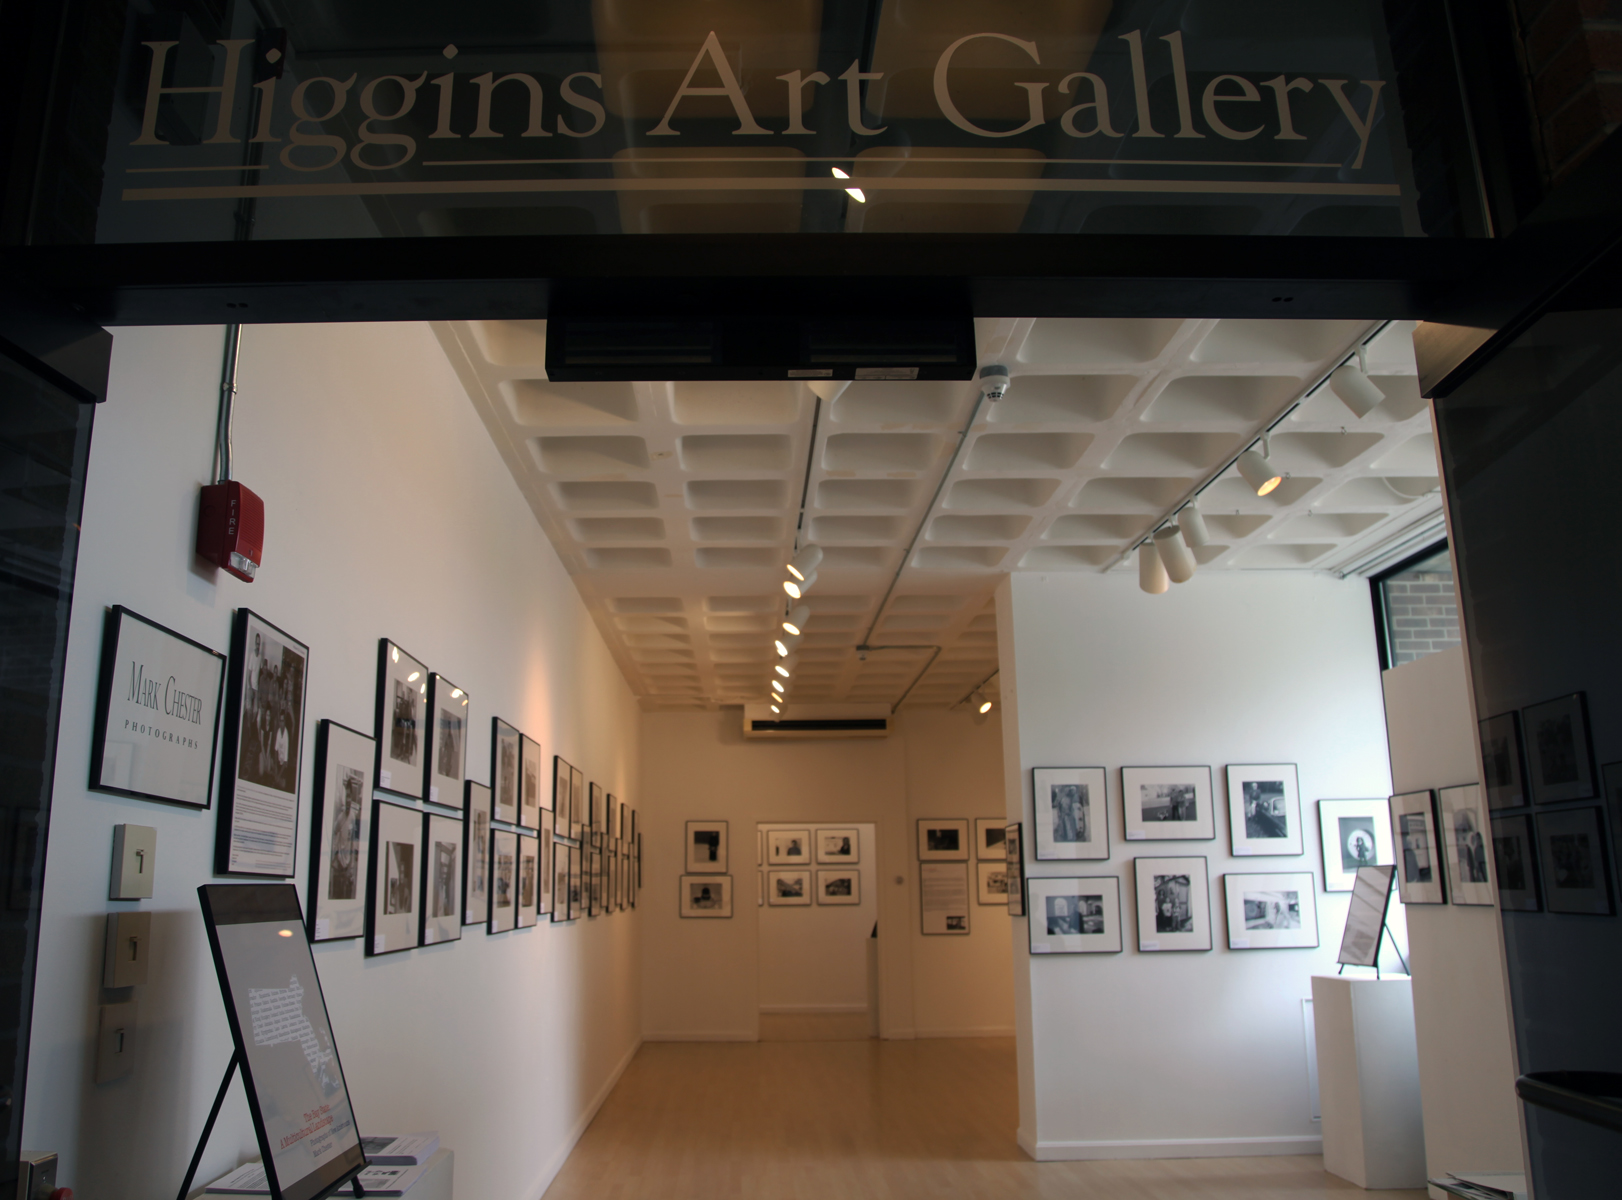 Higgins Art Gallery sign entry_0710.jpg